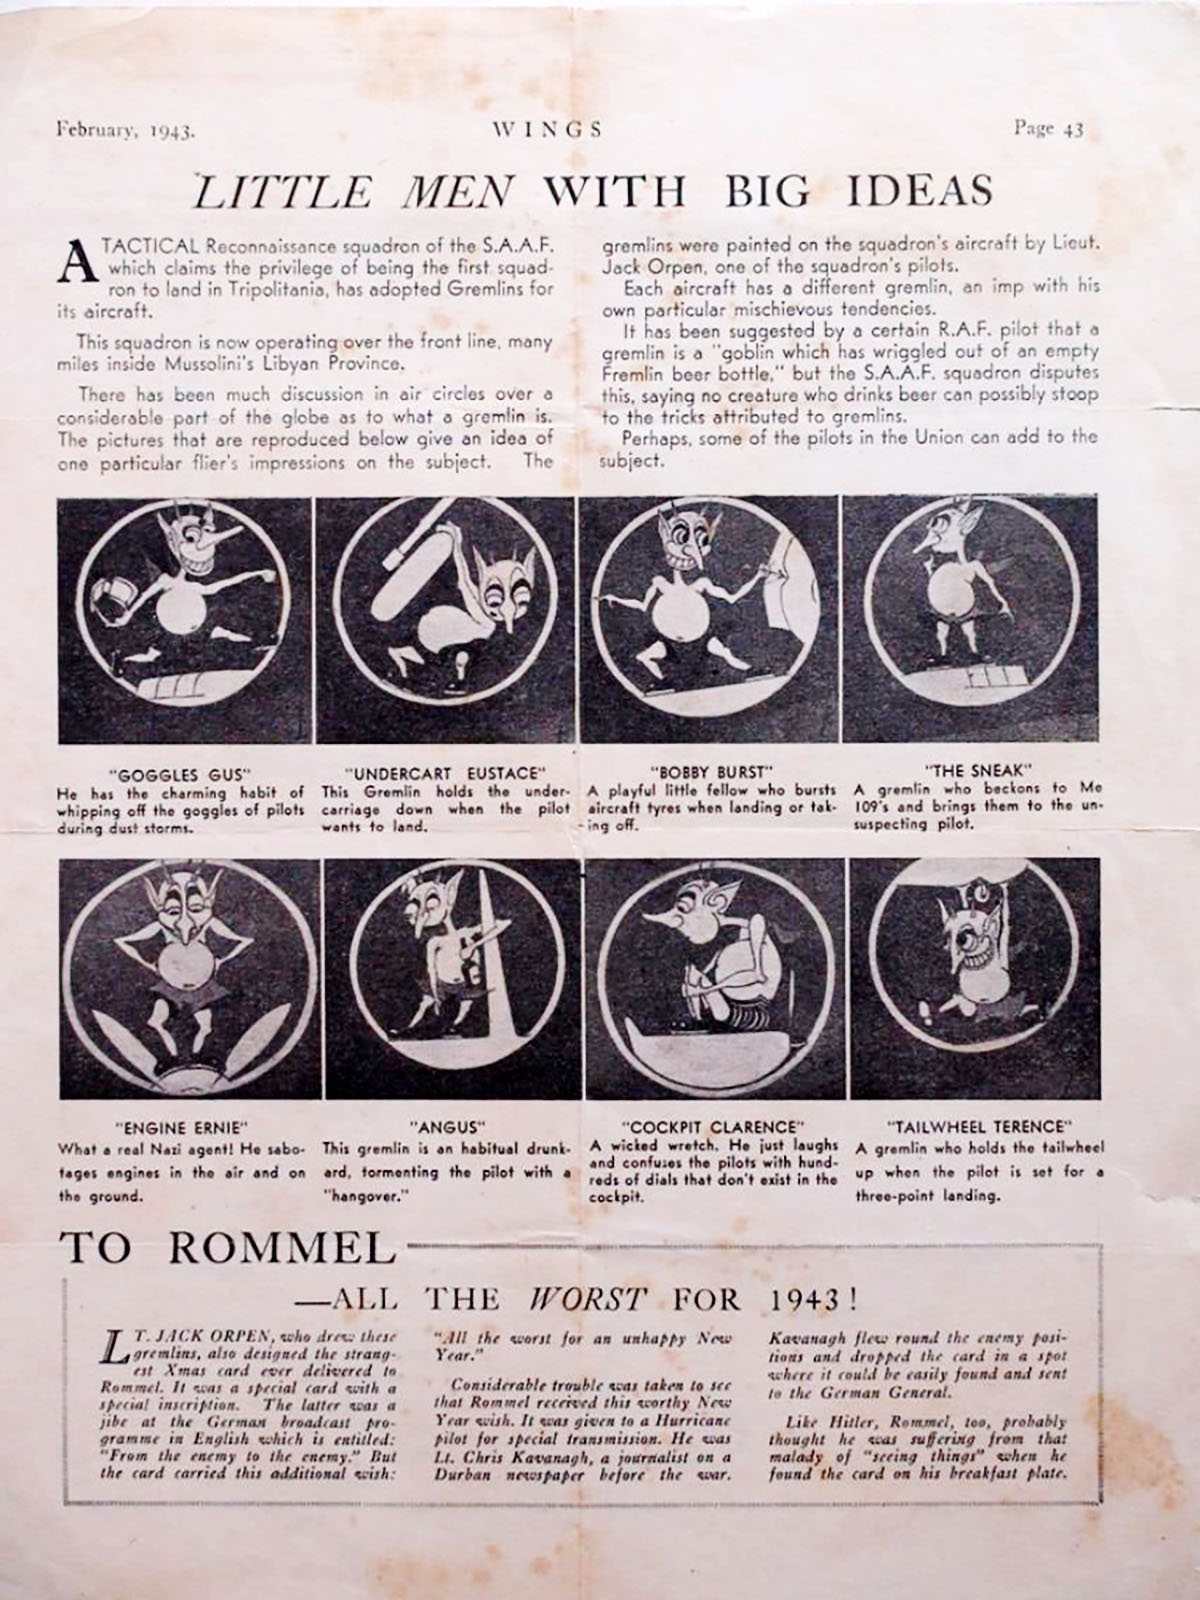 Artwork published in the Air Force magazine Wings in Feb 1942 0A